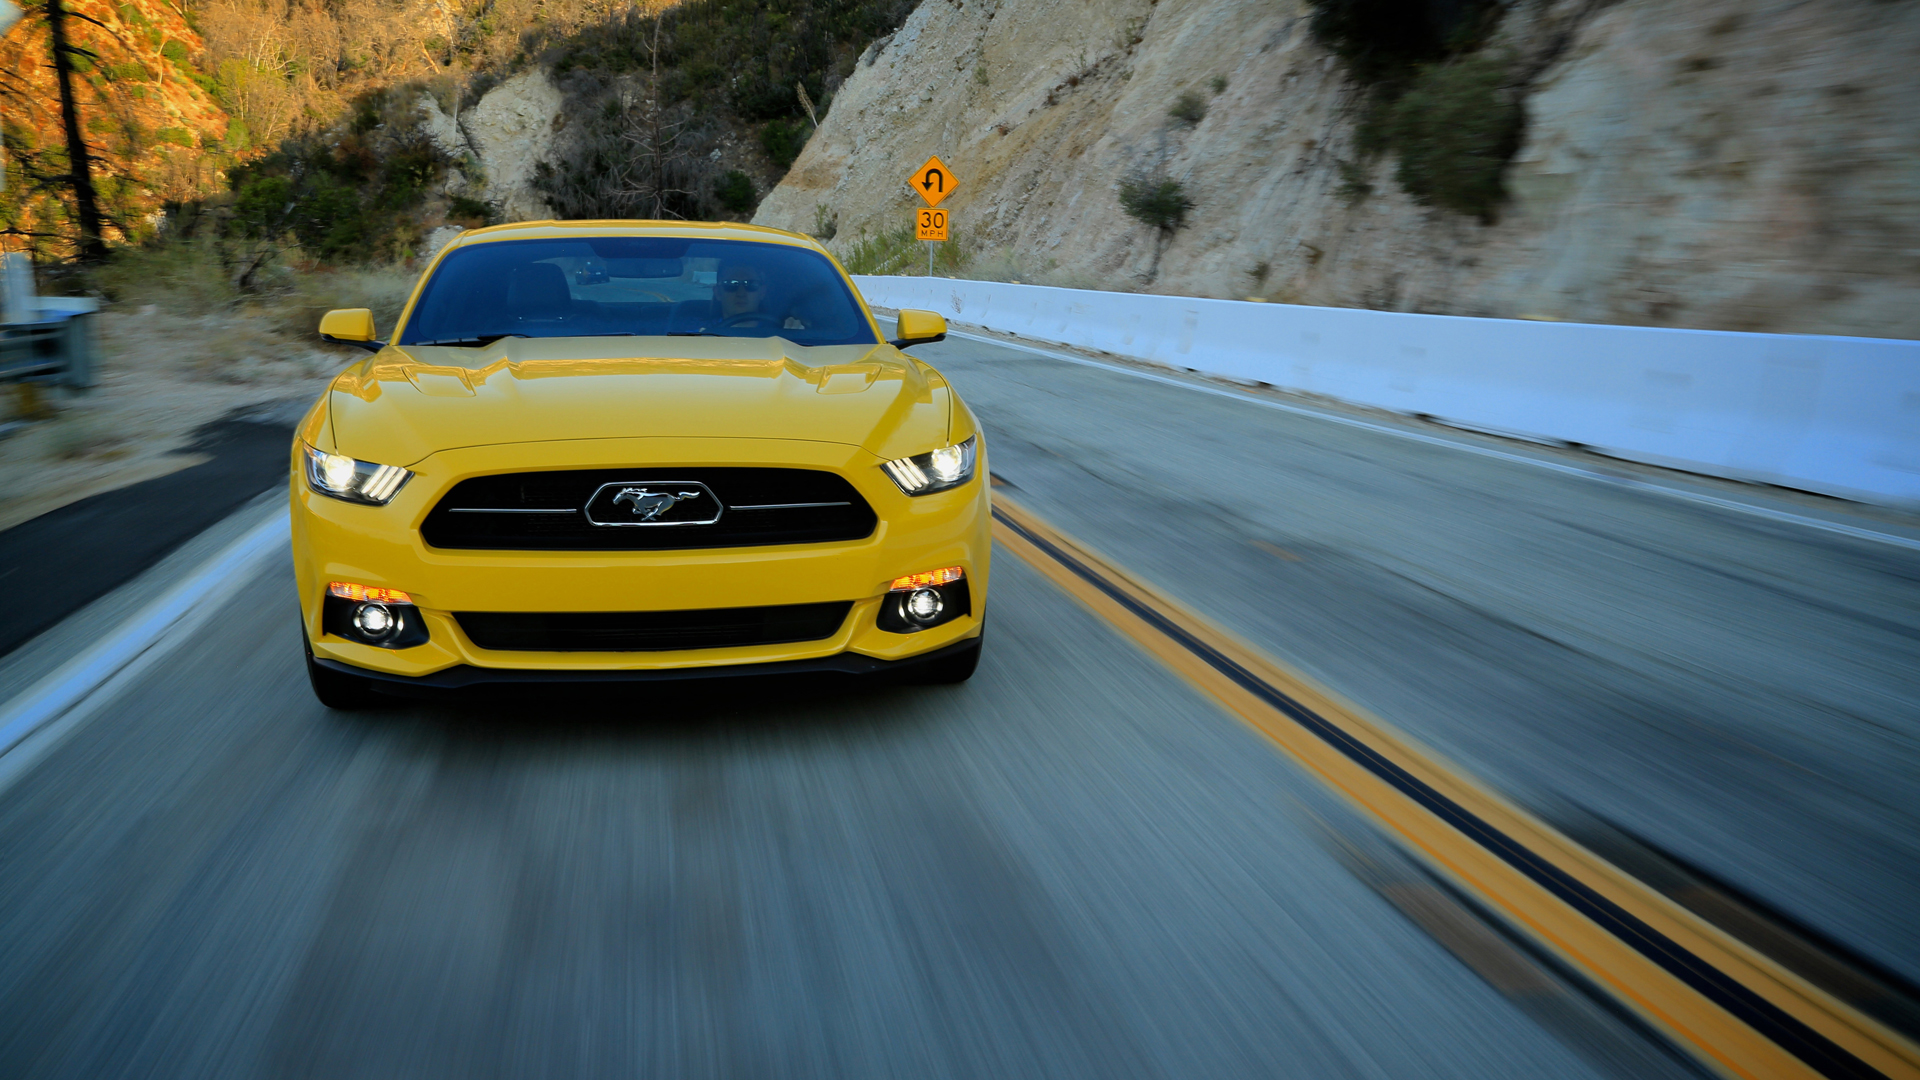 Tagged with Cool Ford Mustang GT 2015 Wallpapers Ford Mustang GT 2015 1920x1080